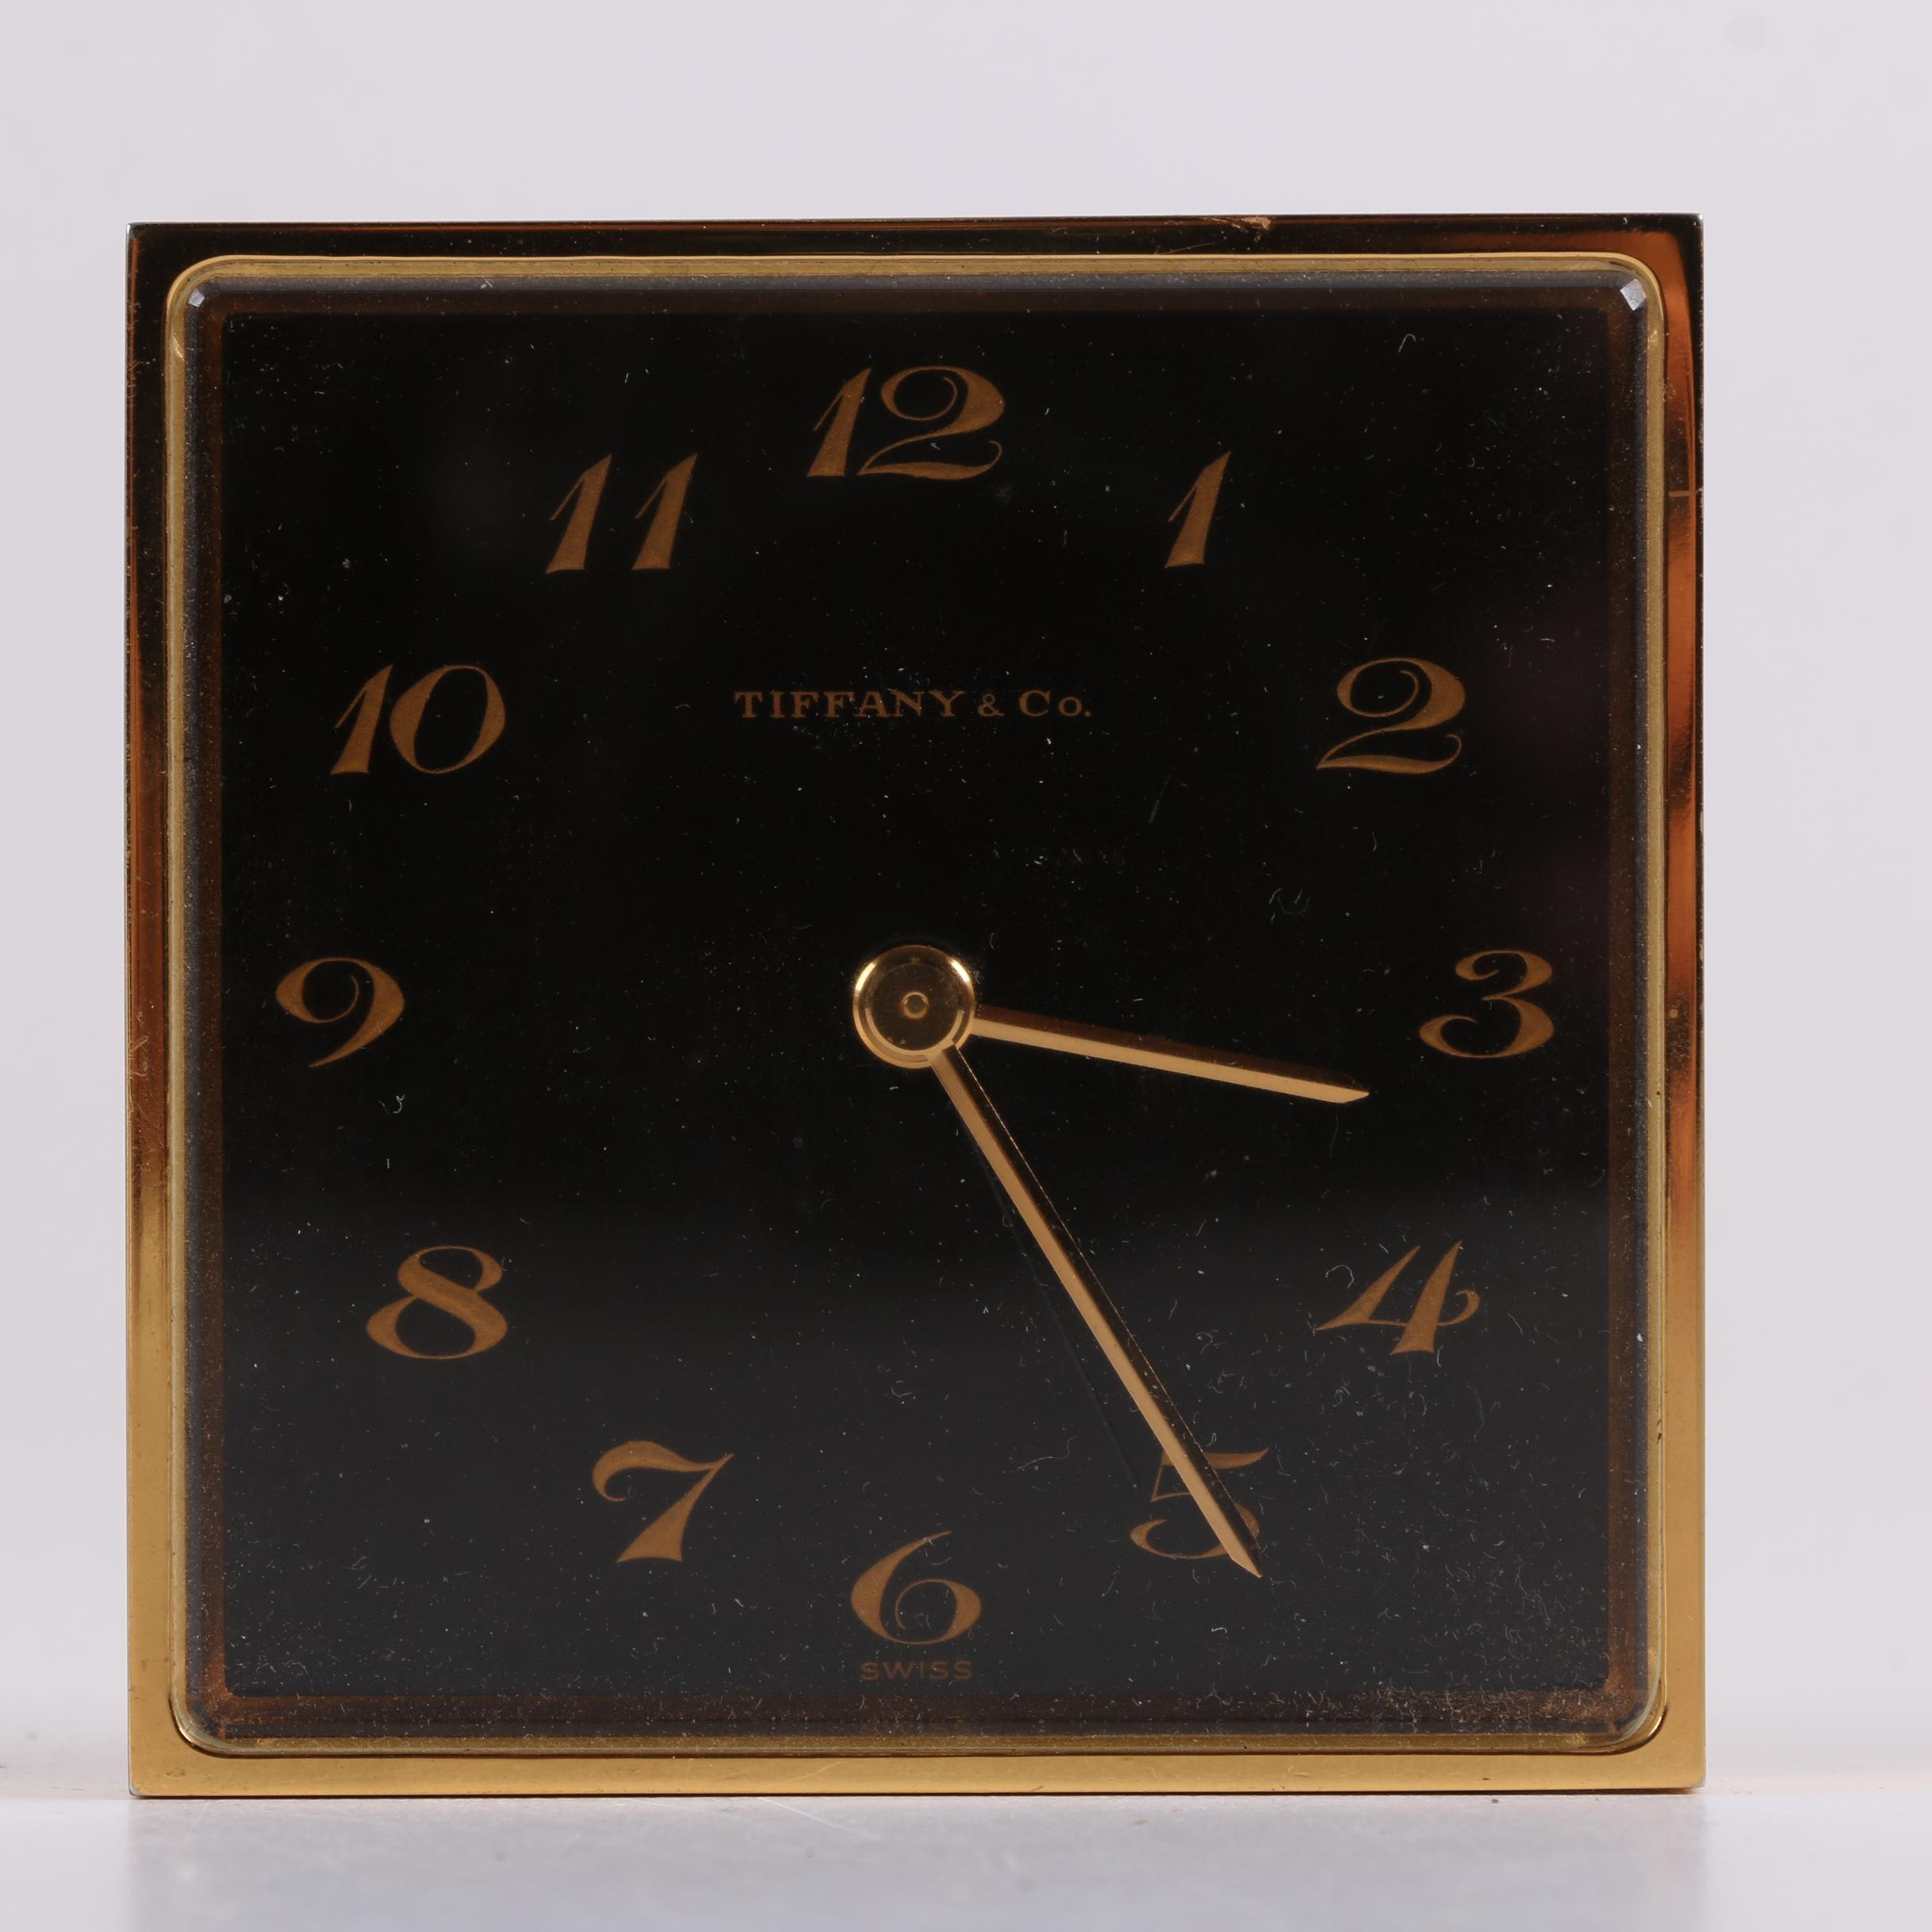 Vintage Tiffany & Co. Brass Alarm Clock